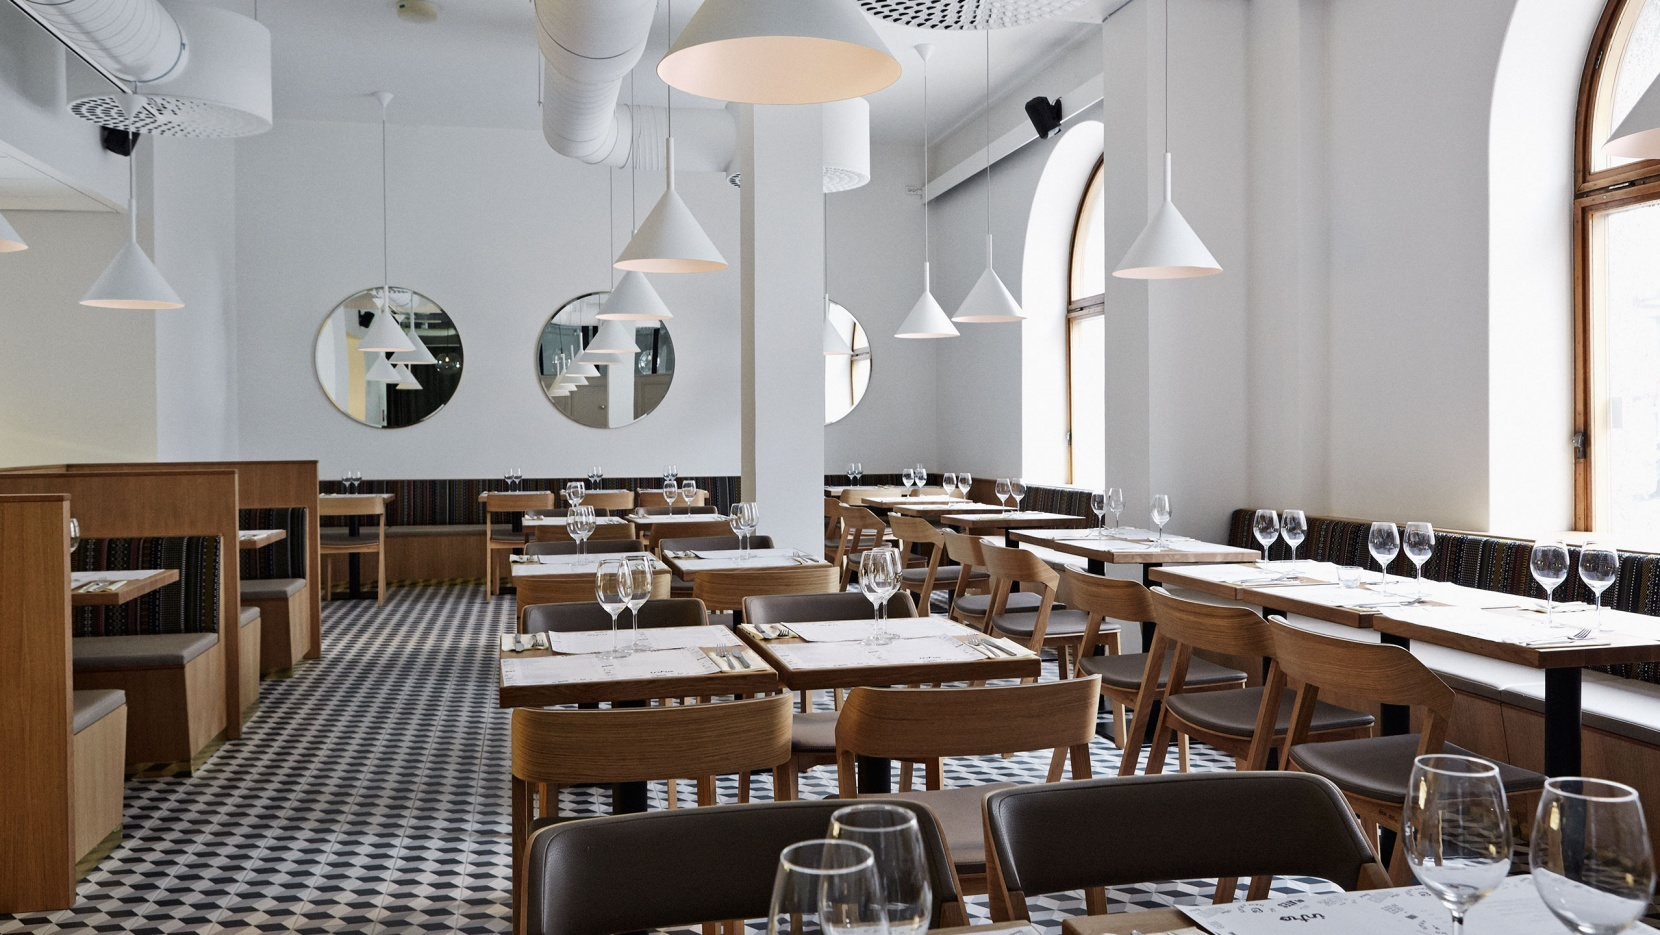 The Renewed Intro Restaurant And Club In Kuopio Finland